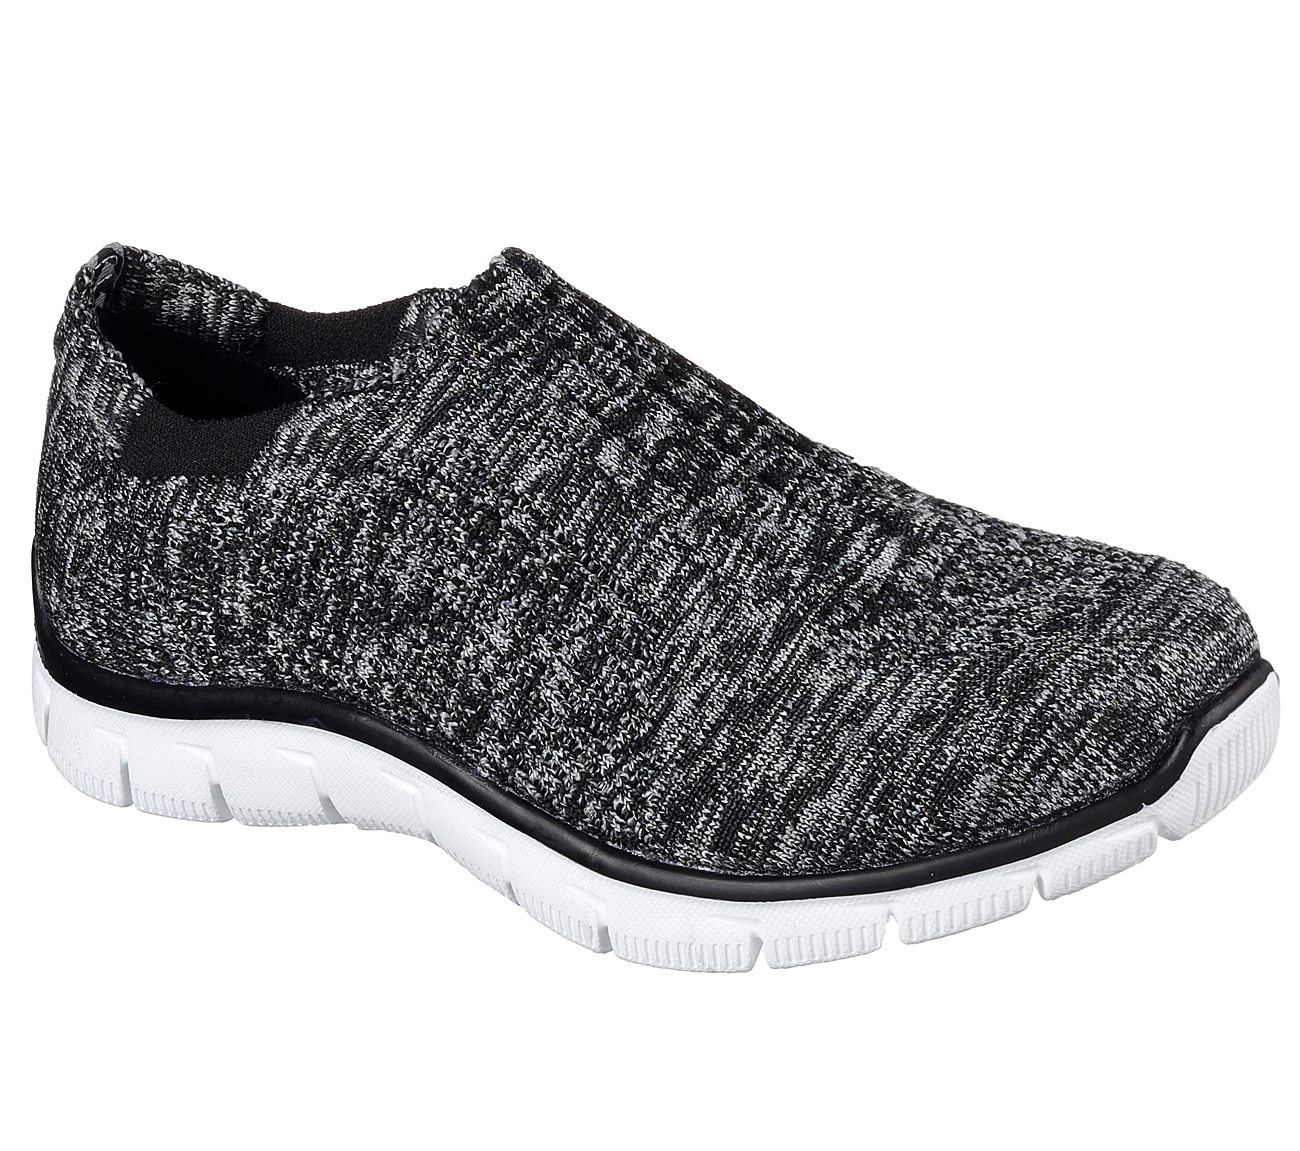 2127d7298b0 Buy SKECHERS Empire - Big Winner Exclusives Shoes only  80.00